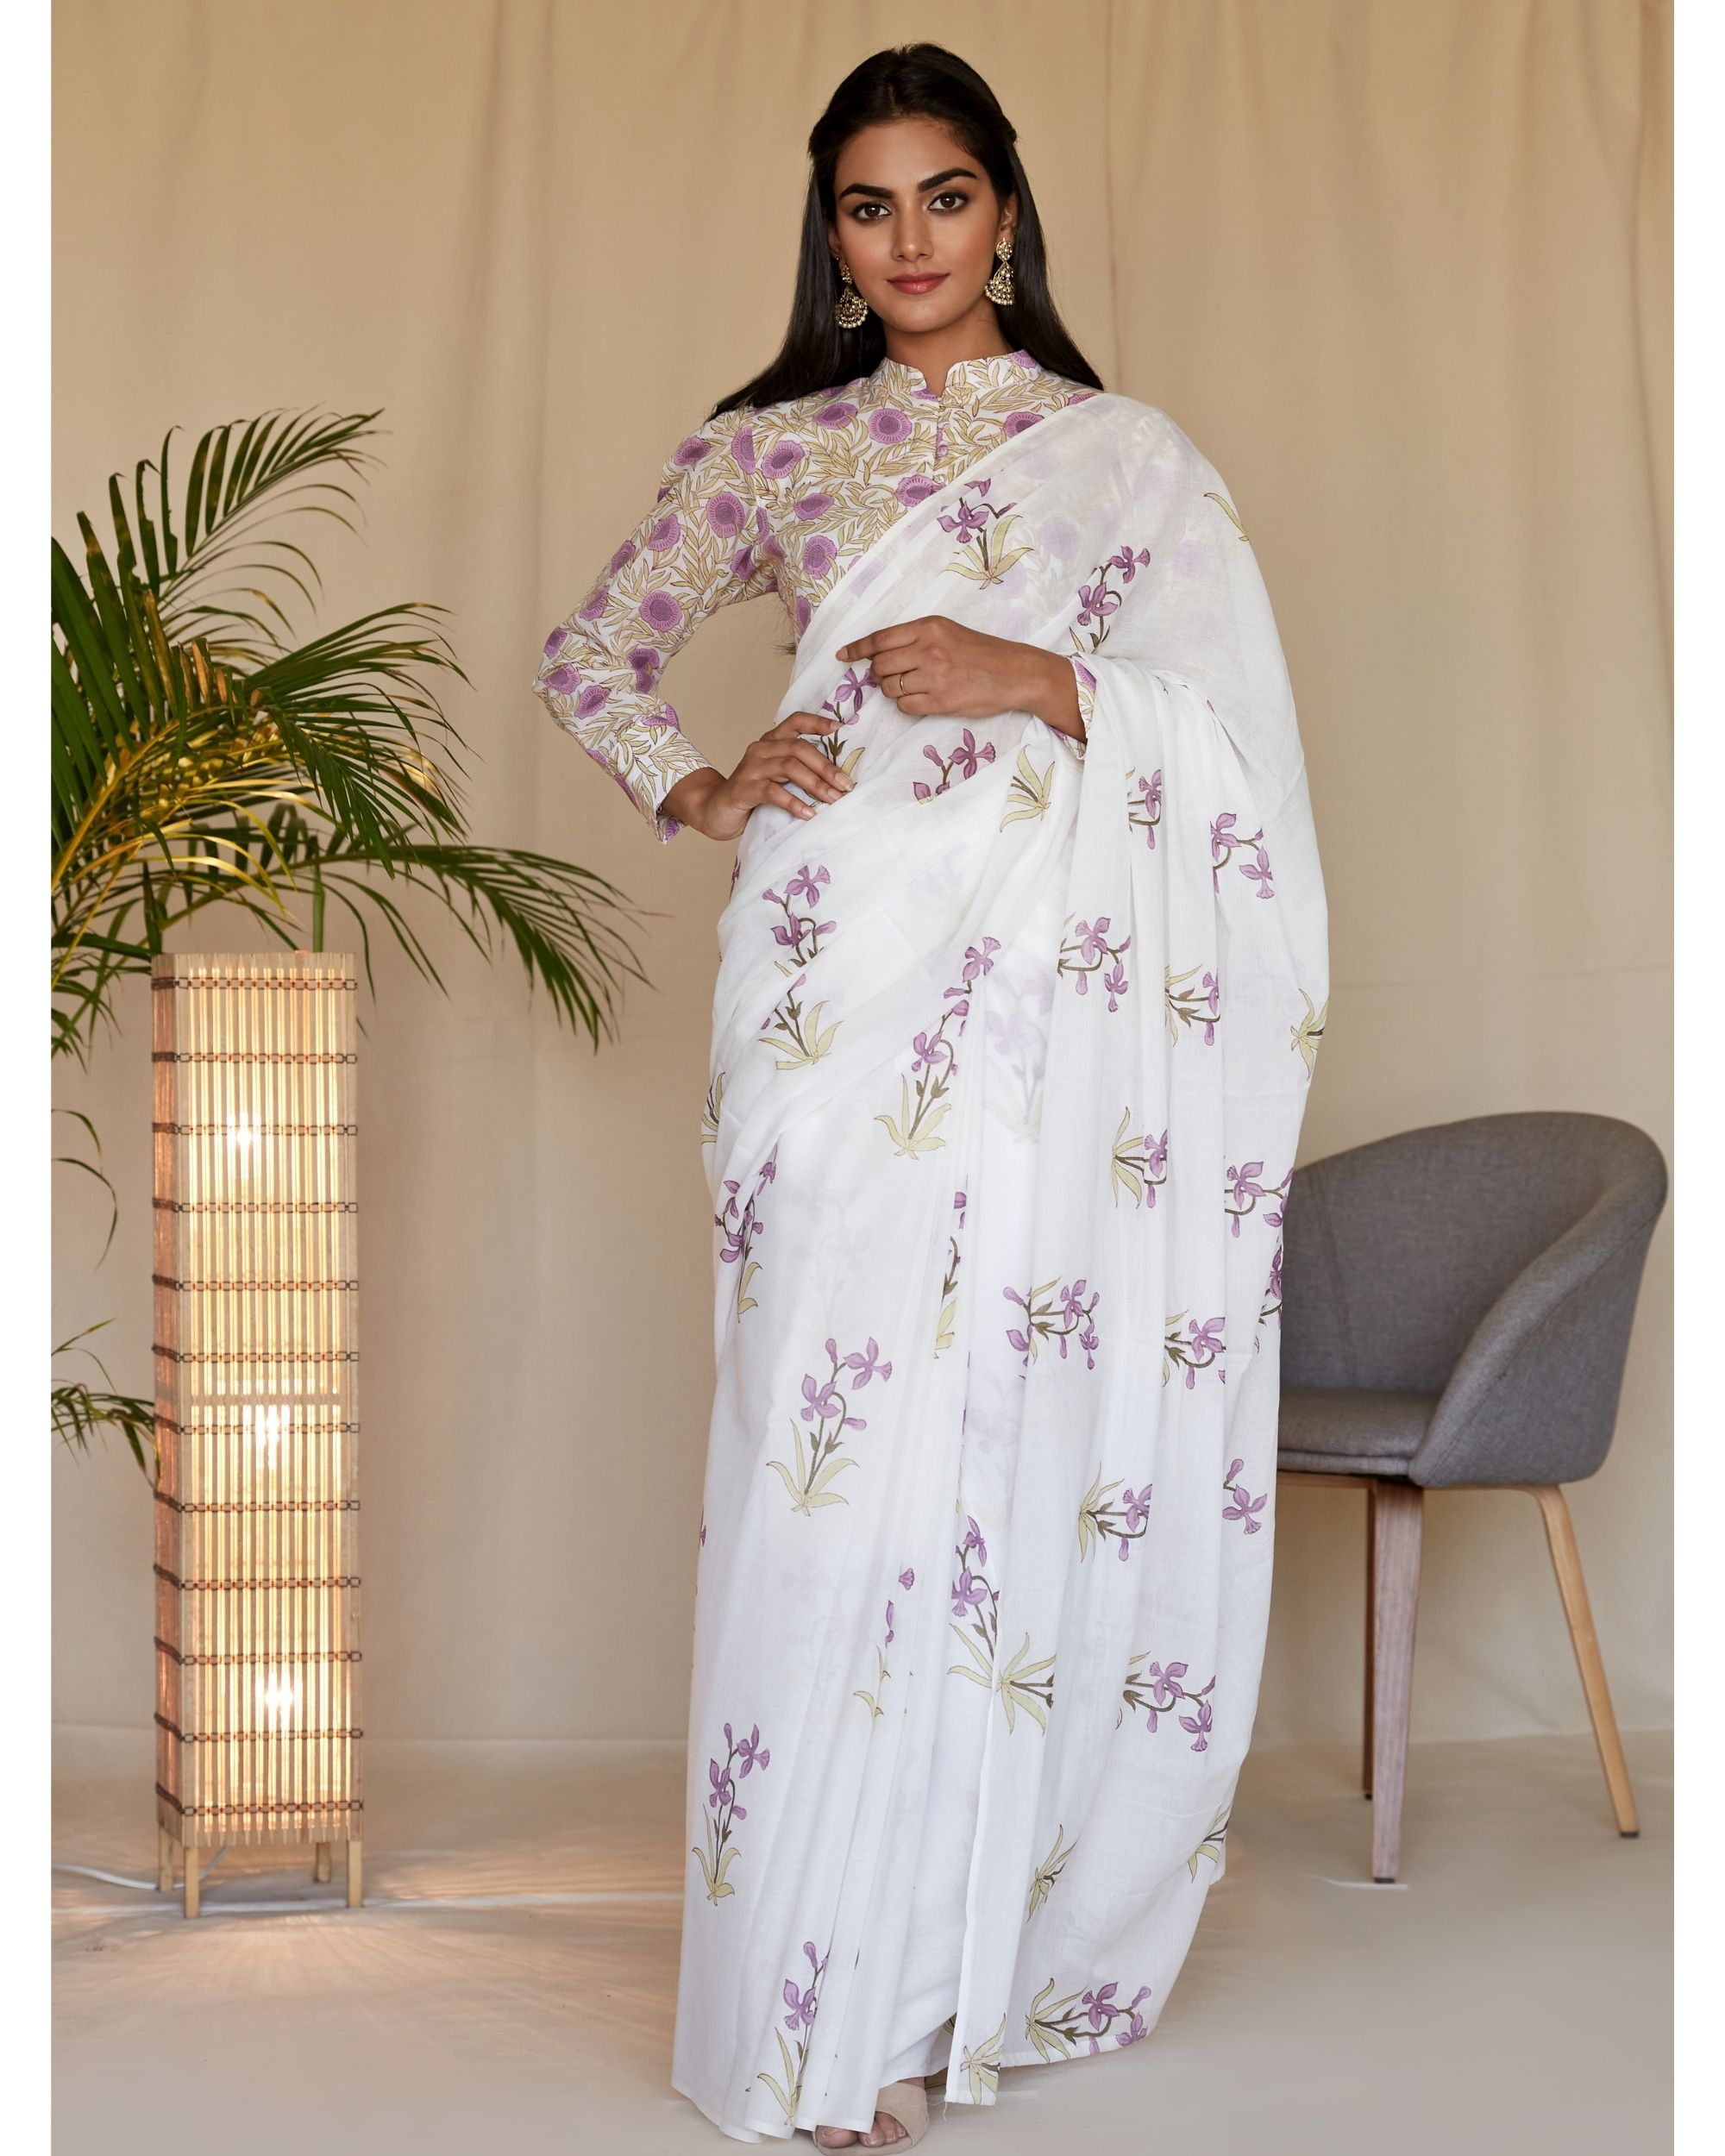 Lilac lily block printed sari with blouse - Set Of Two